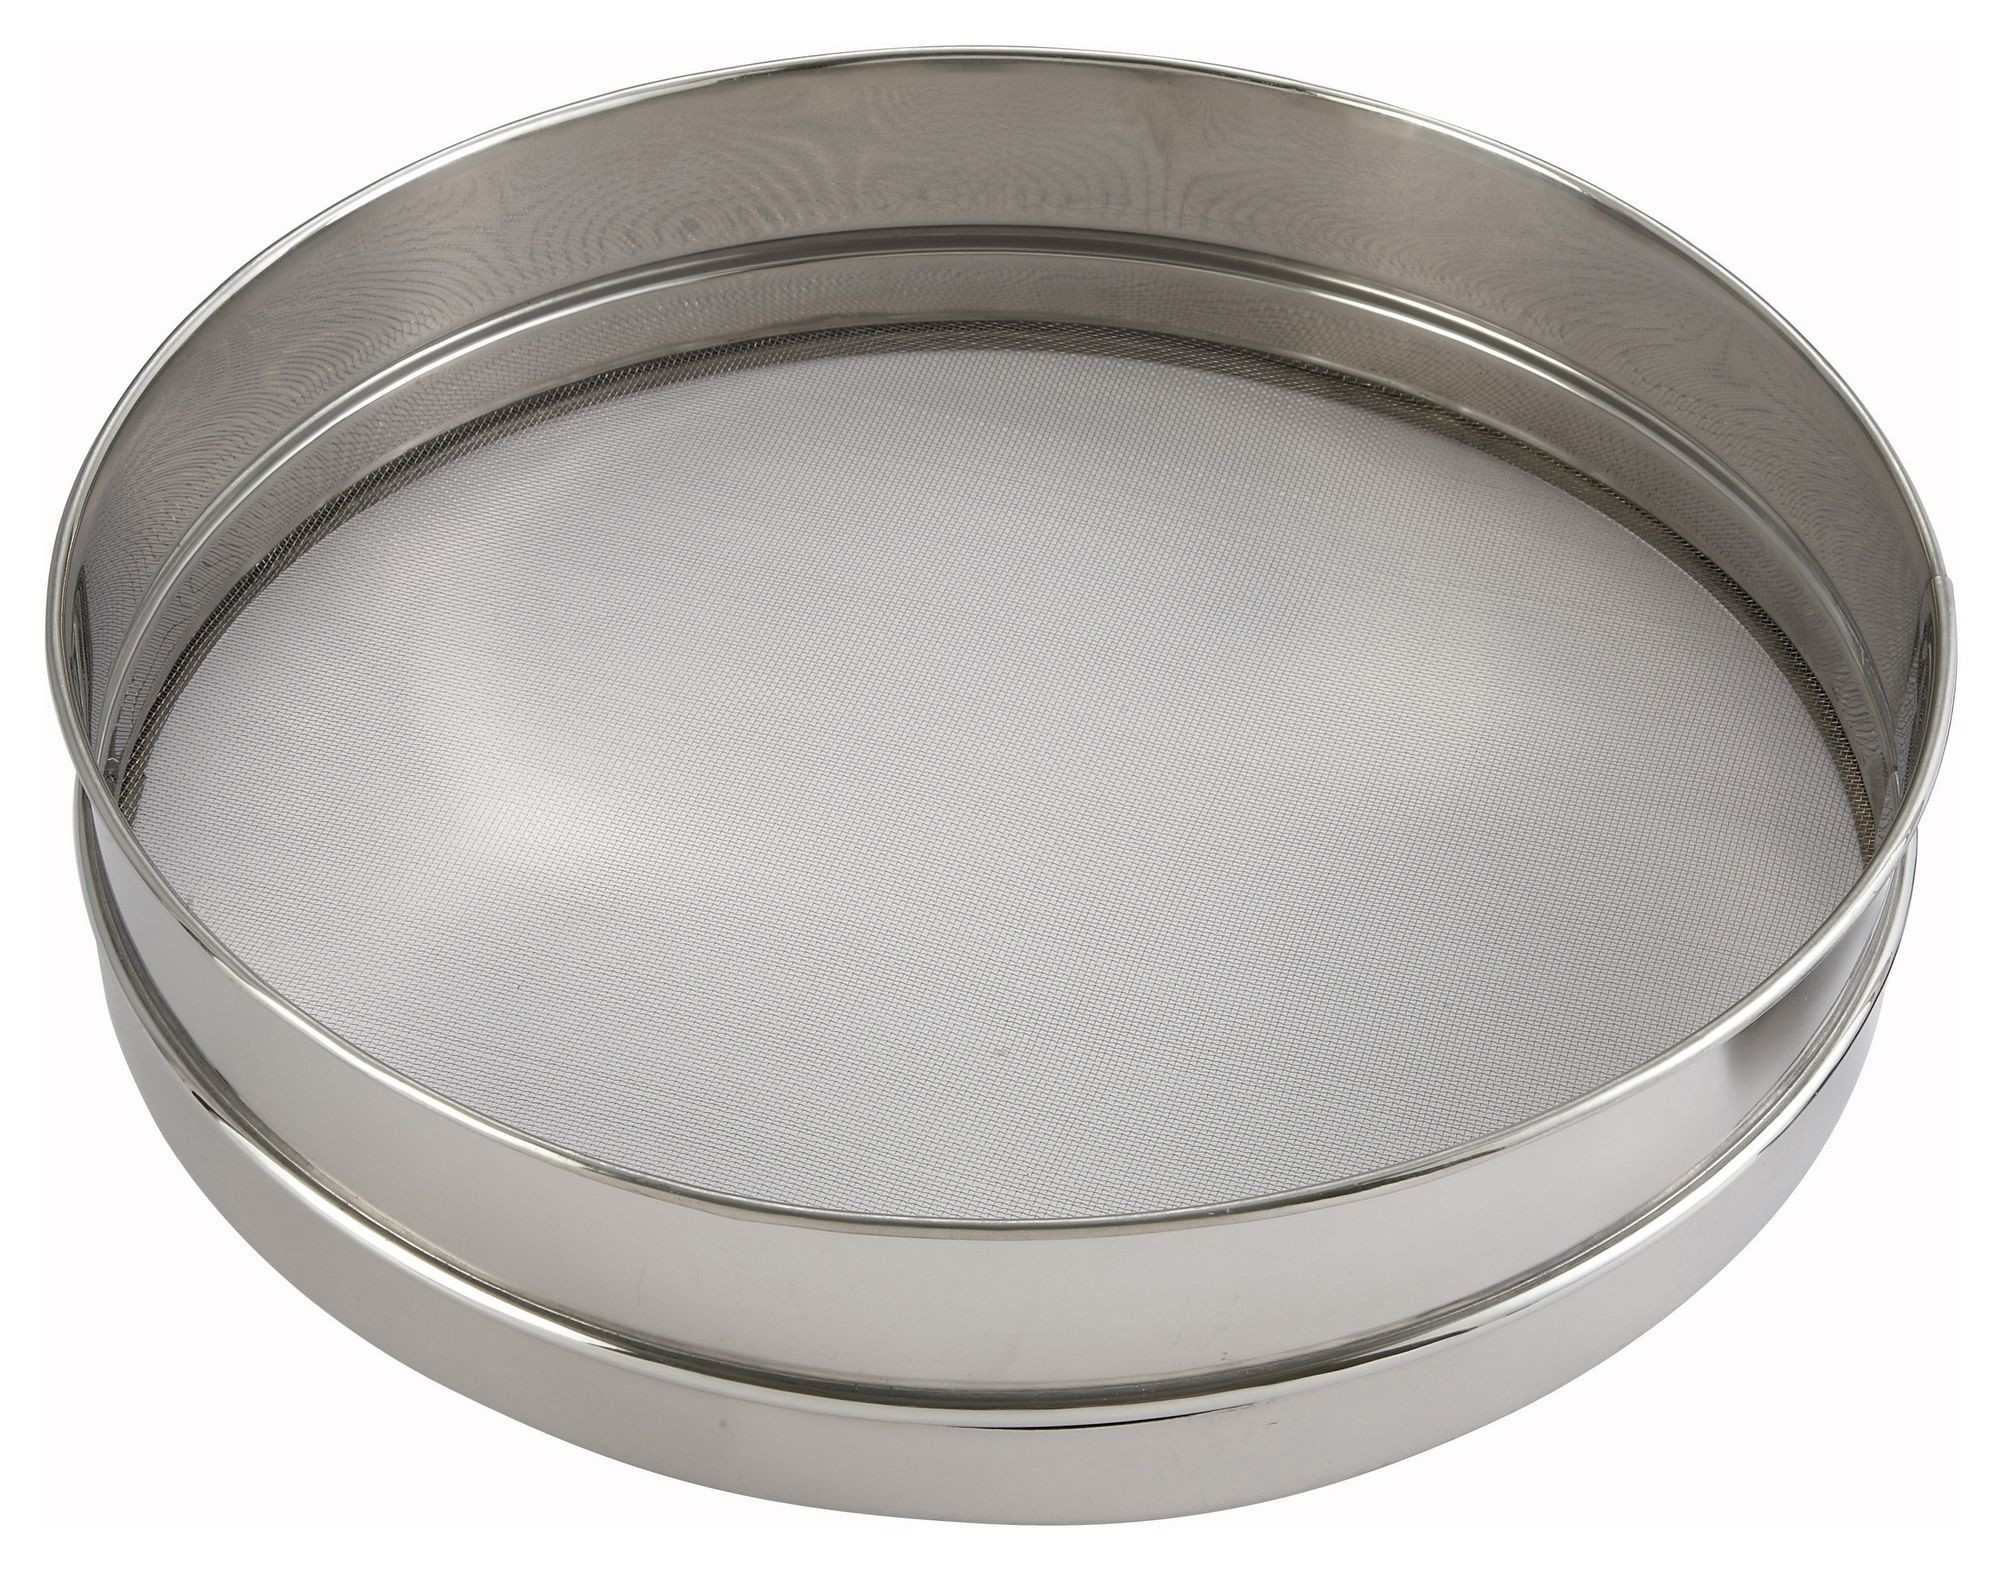 Stainless Steel Sieve With Rim/Mesh - 12 Dia. x 3 Deep